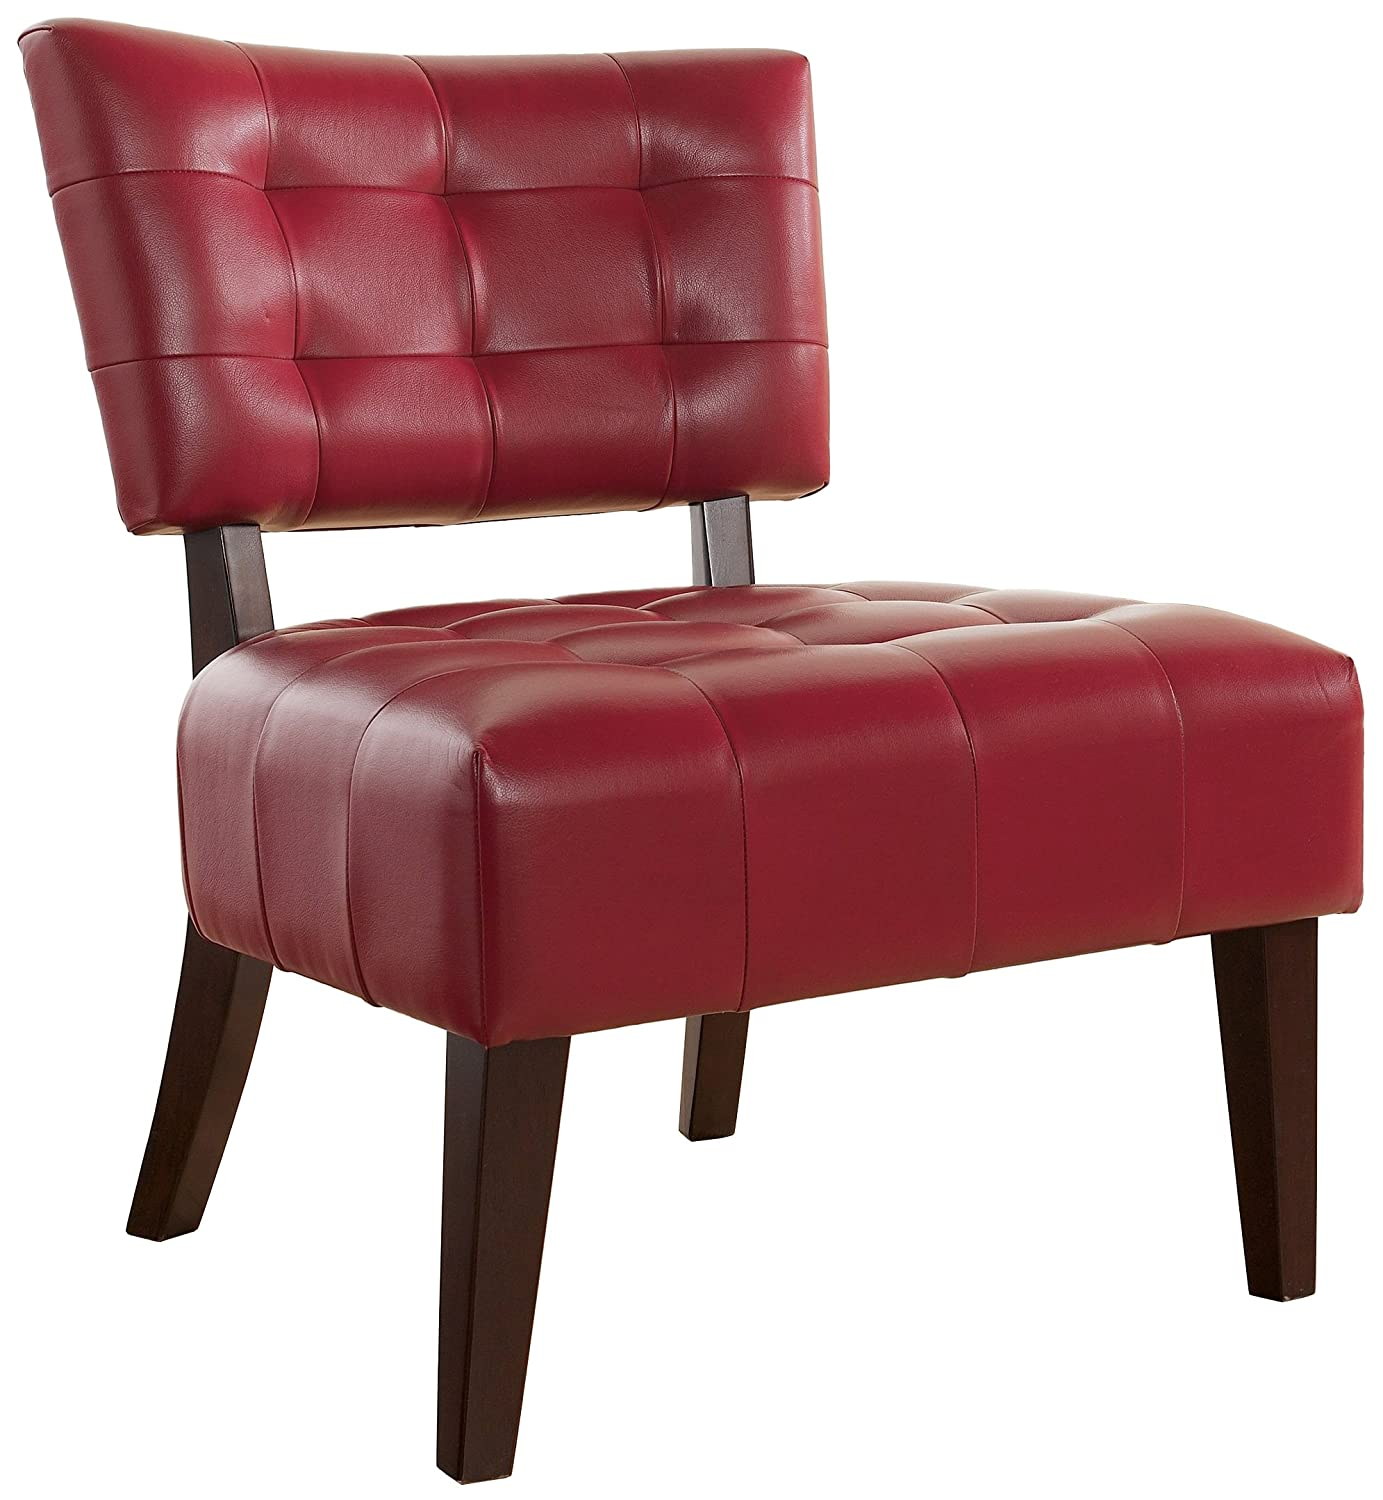 Roundhill Furniture Blended Leather Tufted Accent Chair with Oversized Seating, Black RH AC002BK